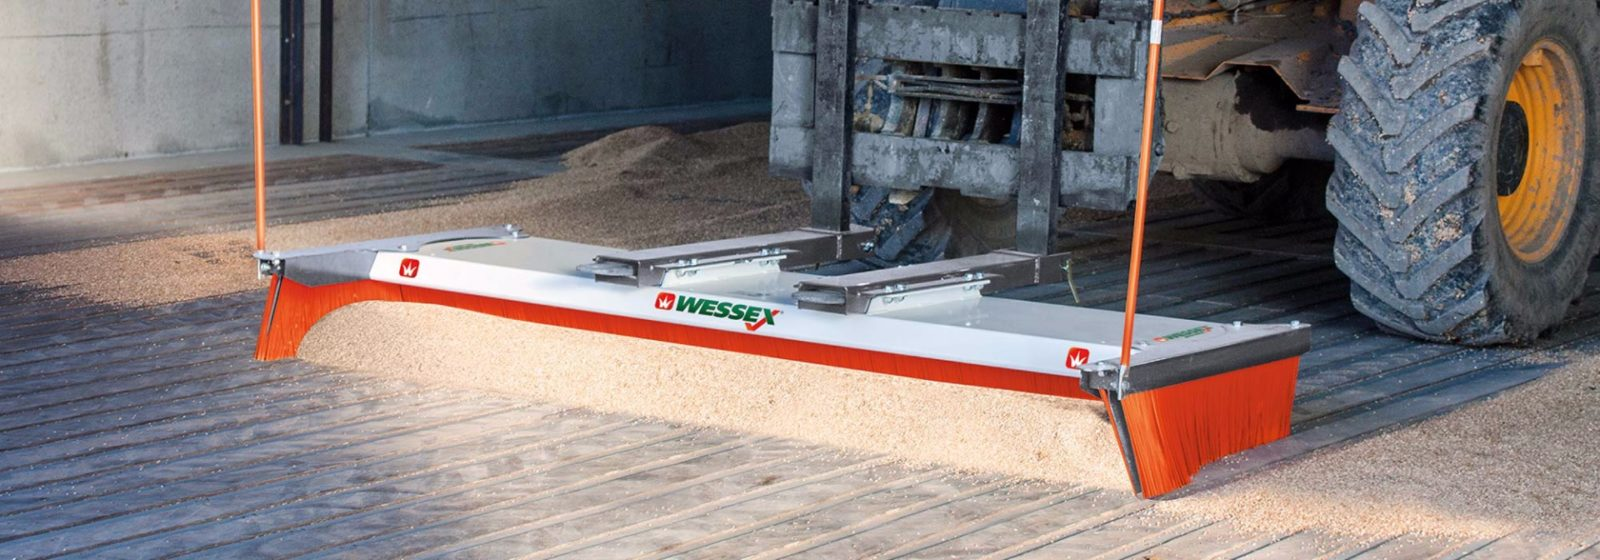 Commercial-Sweeper